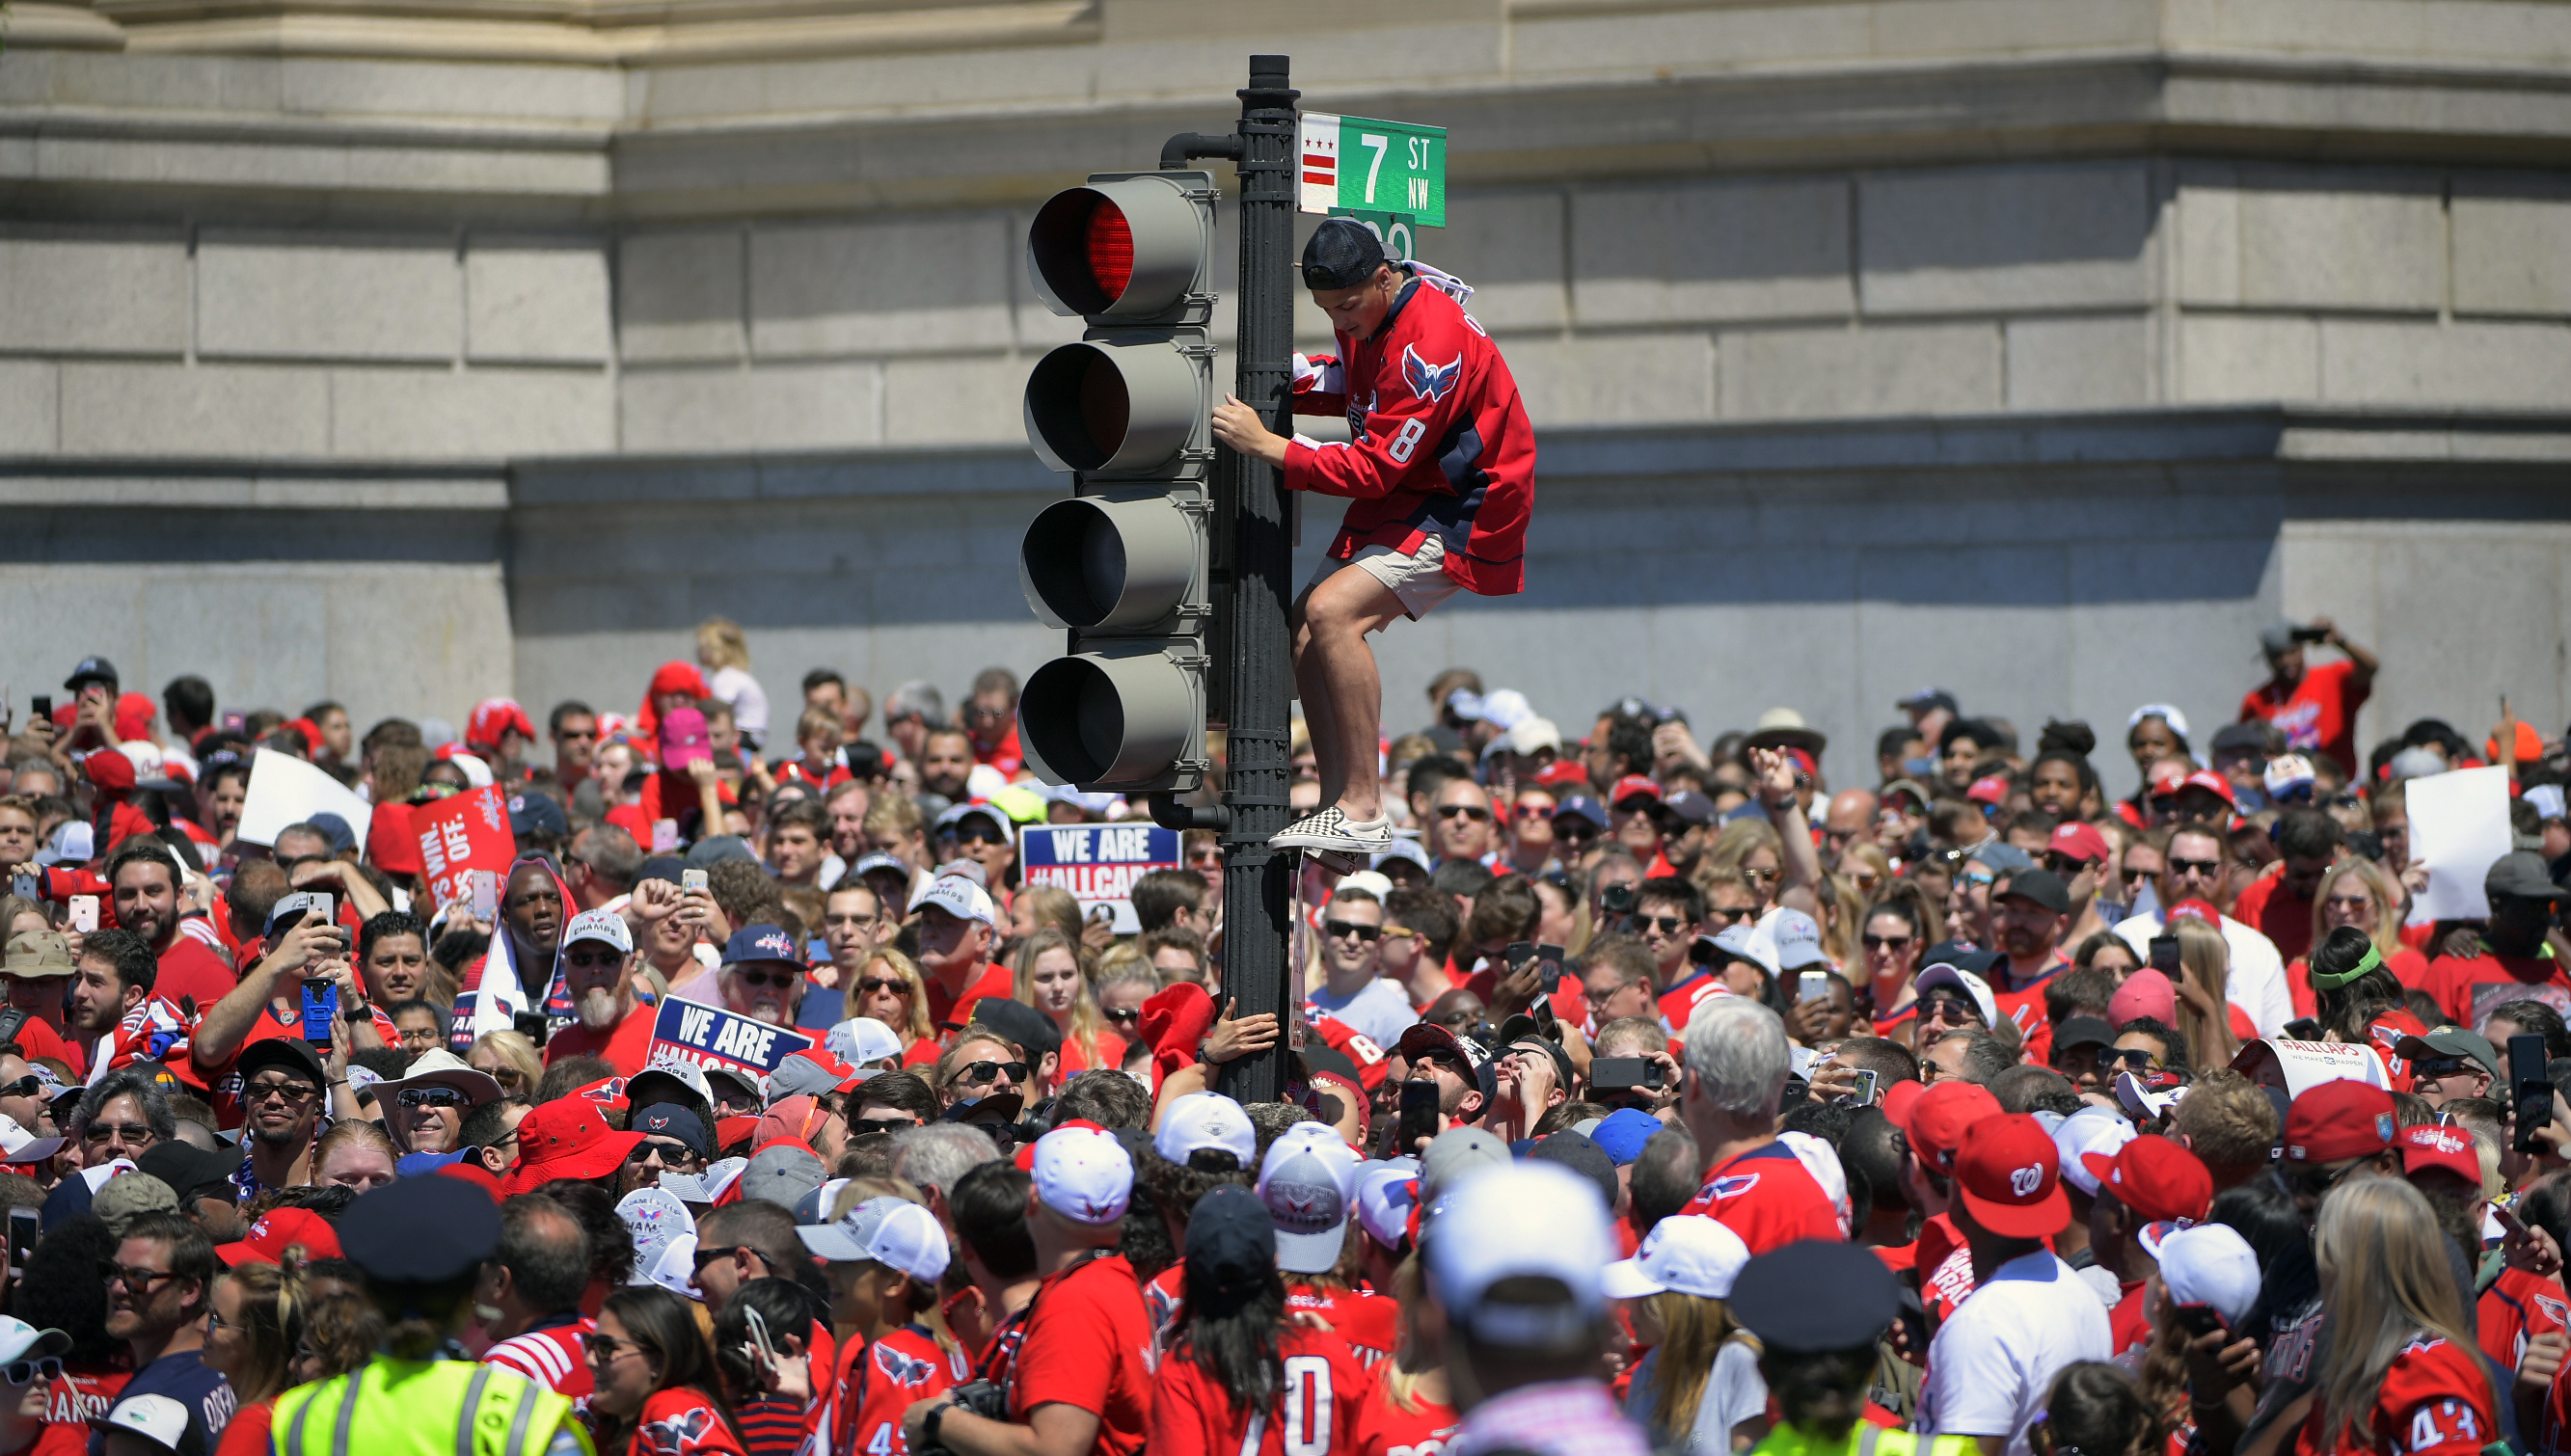 The Washington Capitals Stanley Cup parade